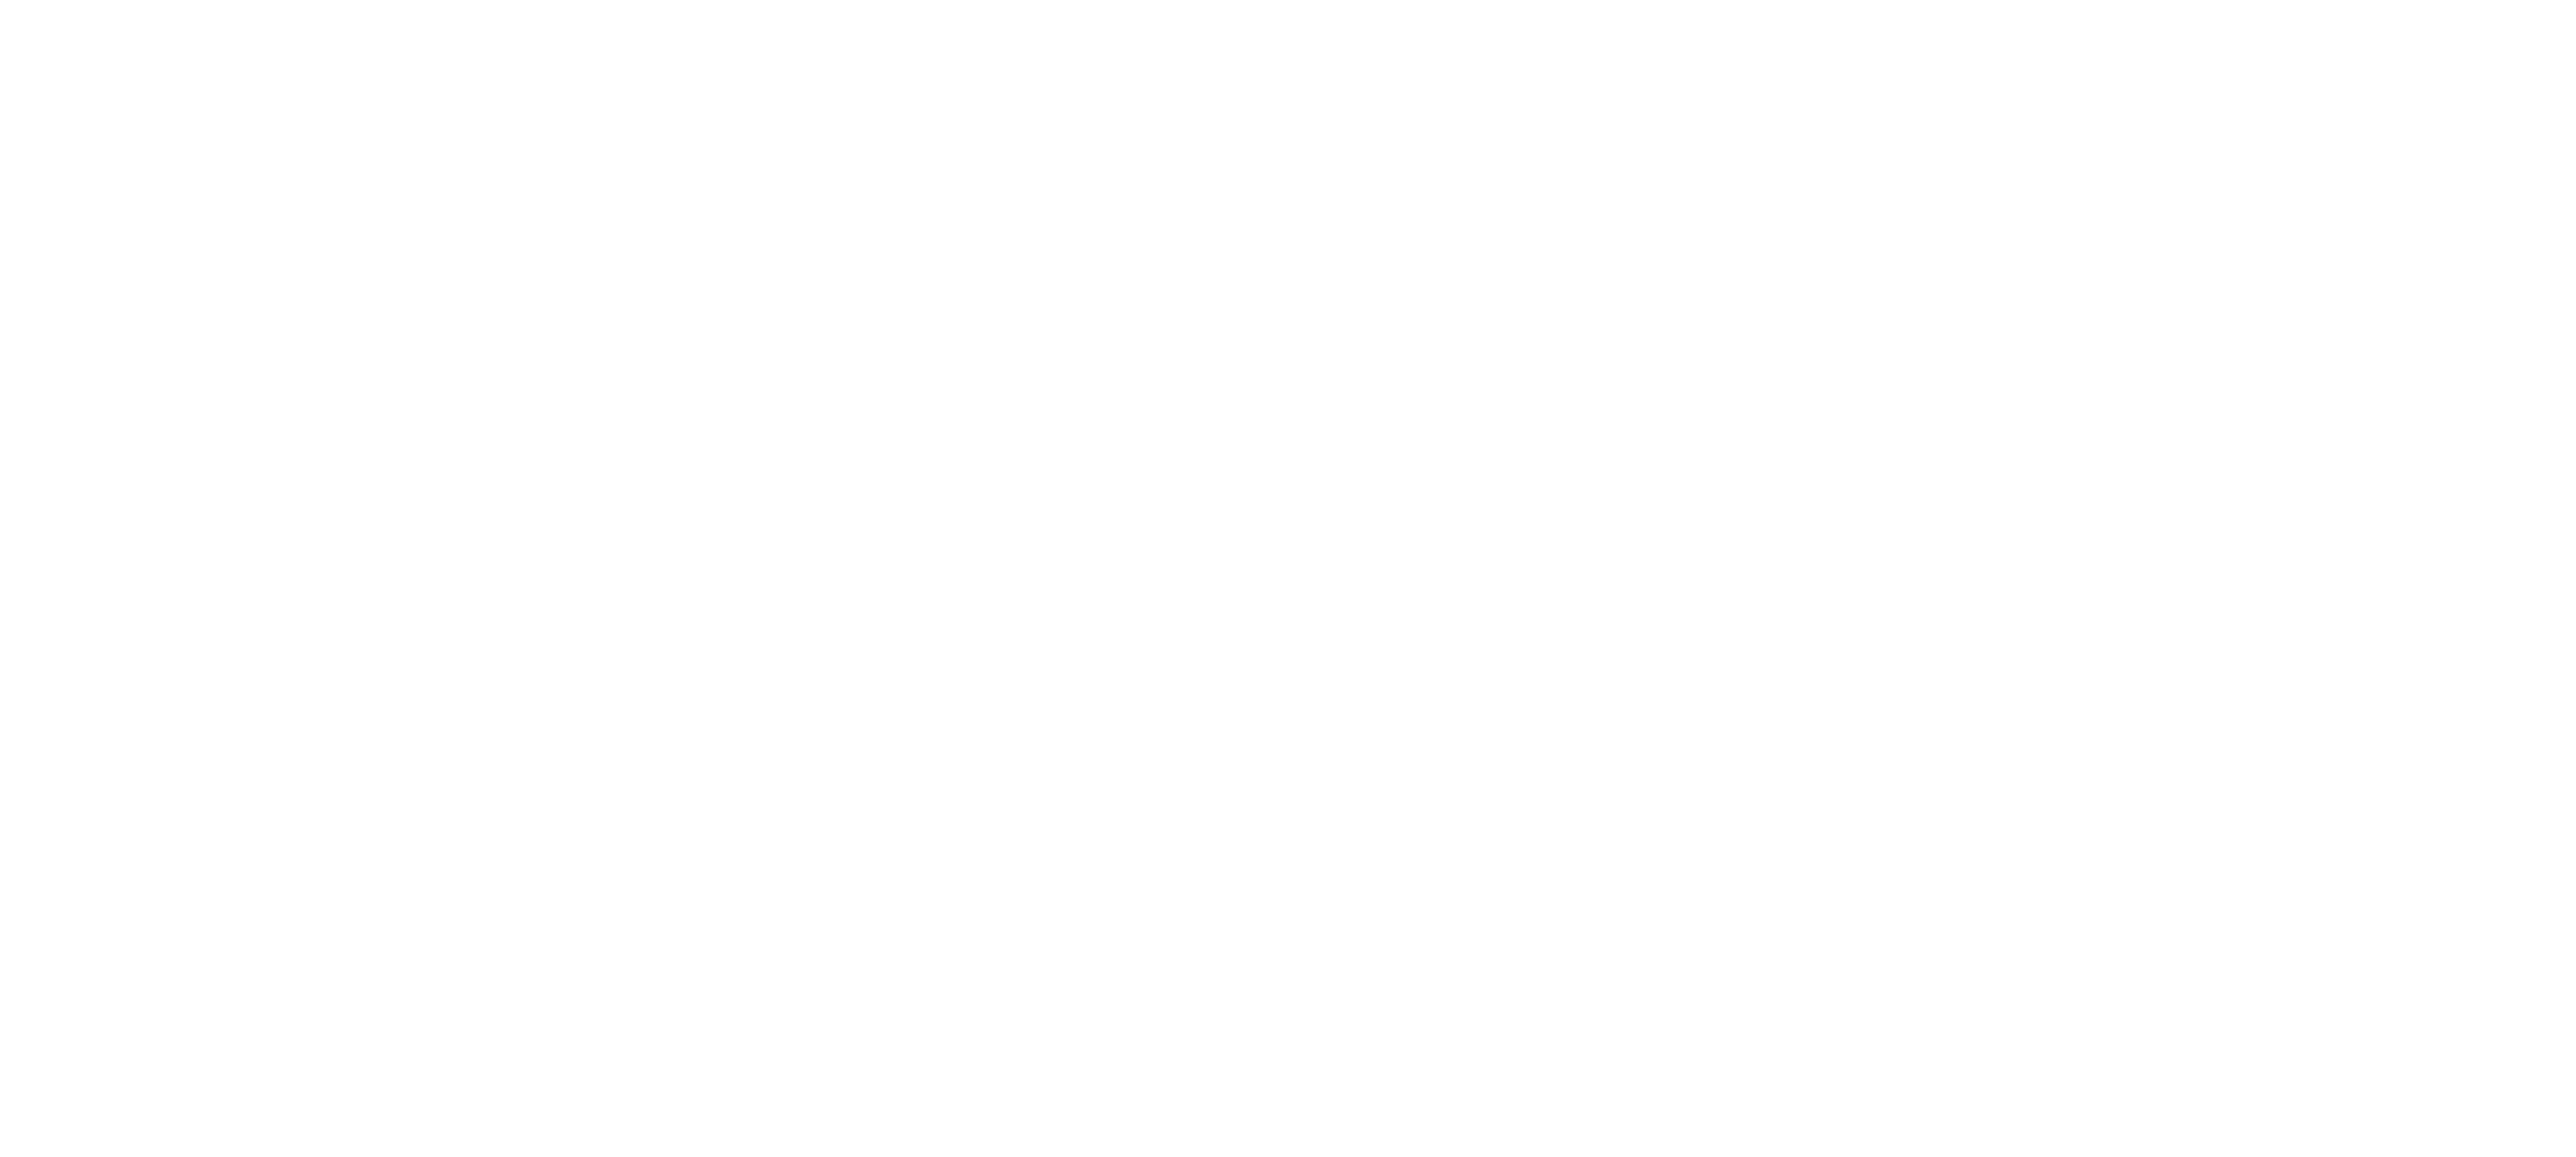 Blooms Floral & Gifts - Flower Delivery in Ashland, NE